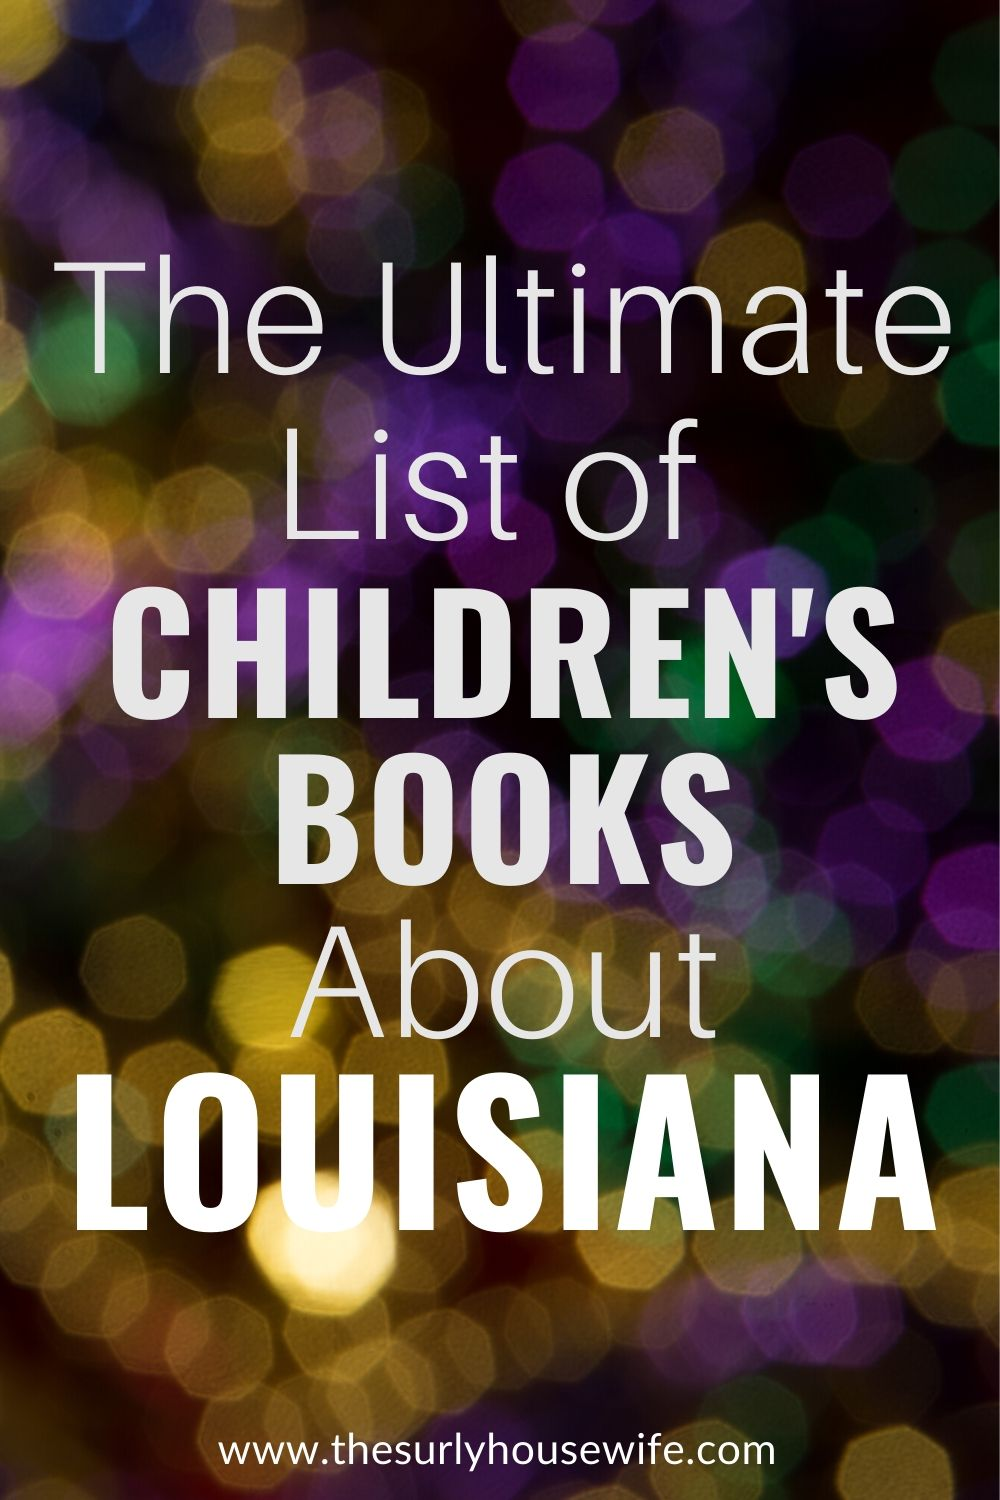 Need children's books about Louisiana? This book list includes picture books about Louisiana as well as chapter books set in Louisiana, and children's books about Hurricane Katrina. Perfect for a Louisiana unit study!